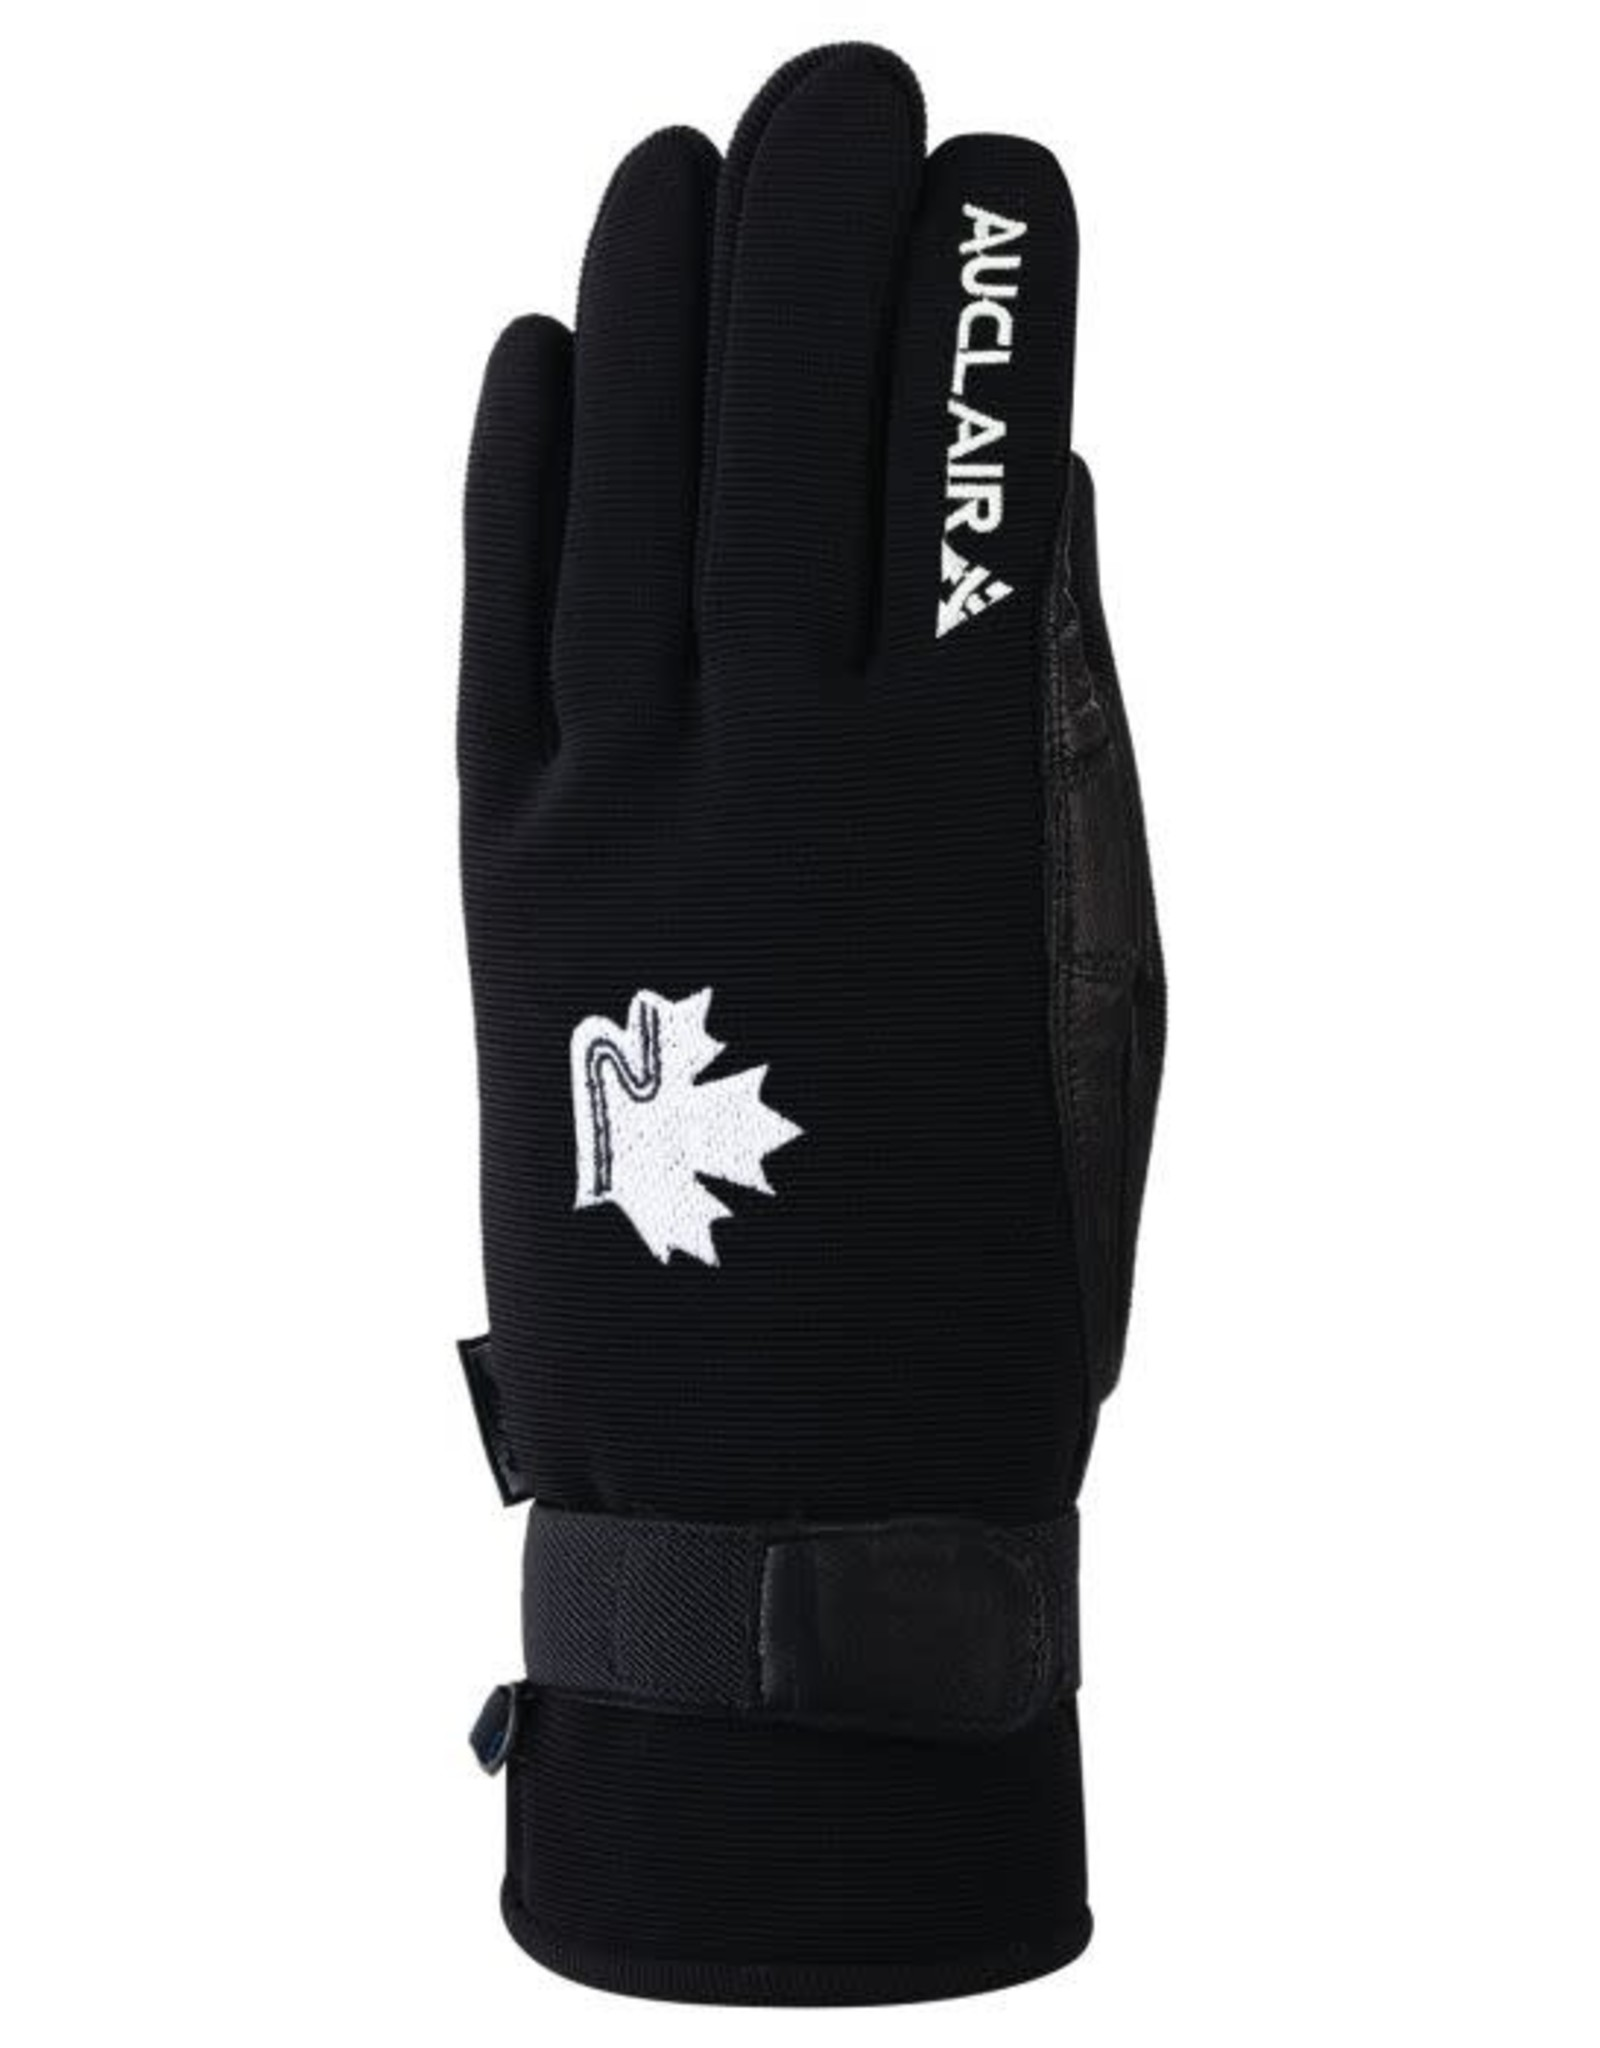 Auclair Auclair Skater Glove Men's